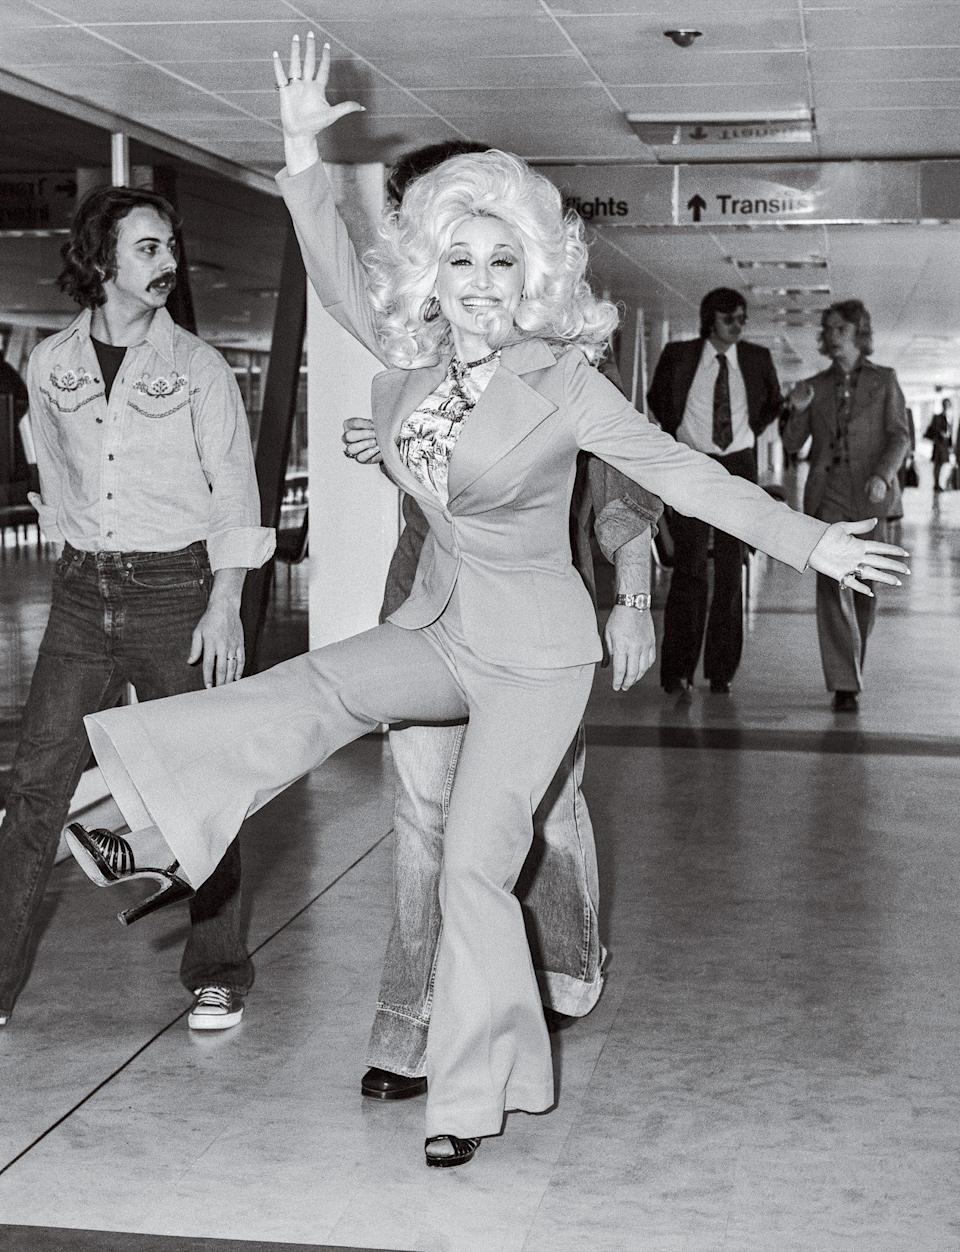 <p>Post-show high, perhaps? The singer leaving London after performing at the International Festival of Country Music at Wembley Arena.</p>